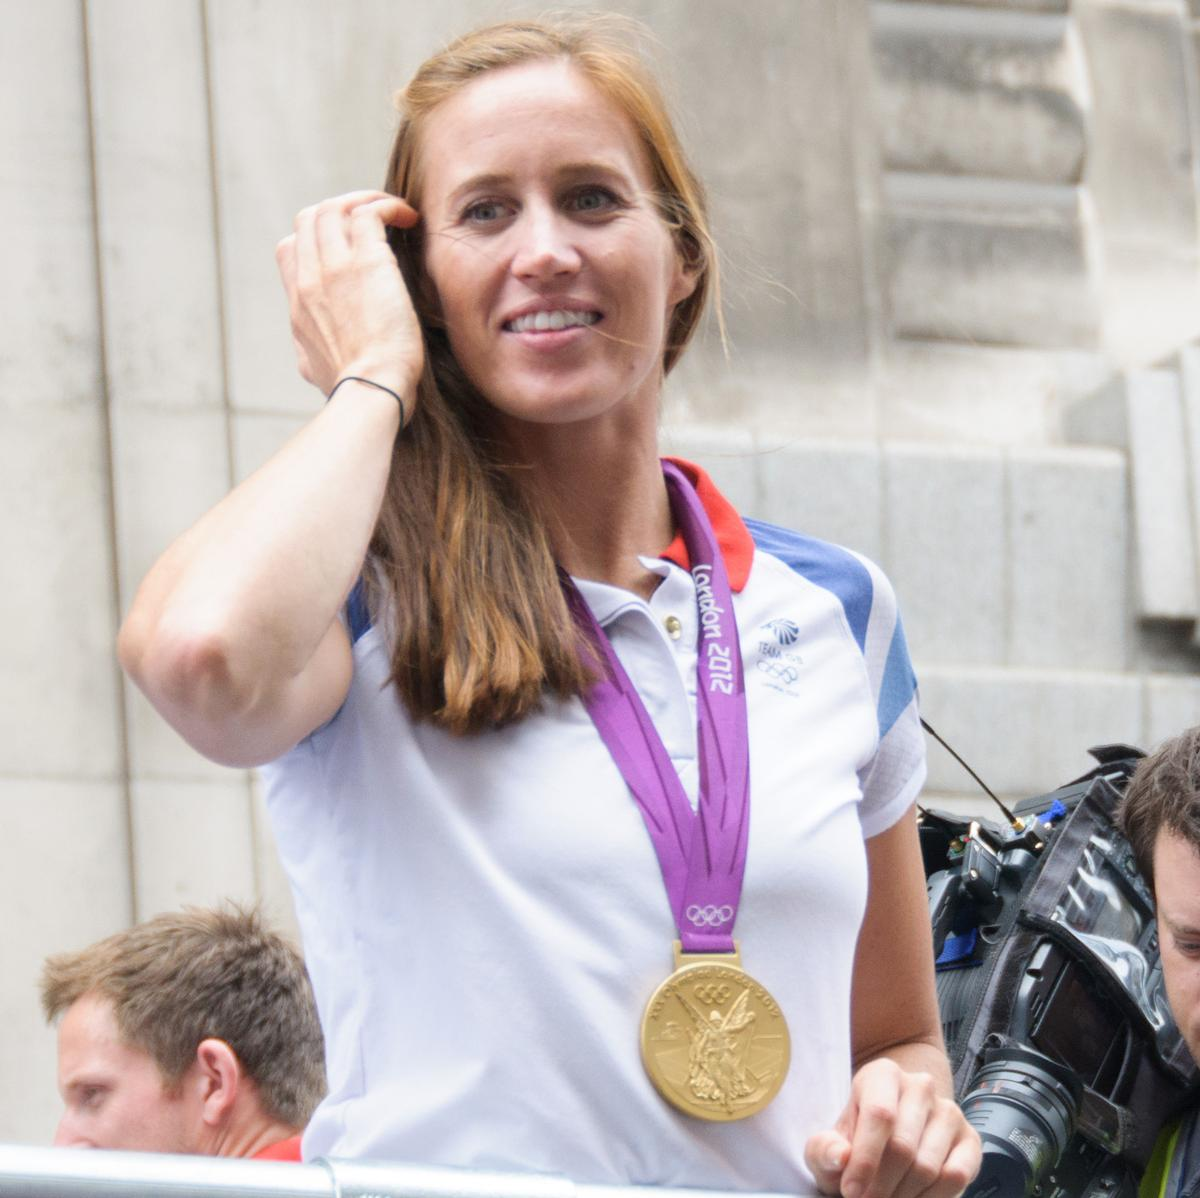 Helen Glover won gold at London 2012 having been identified as a potential rower via a talent identification scheme